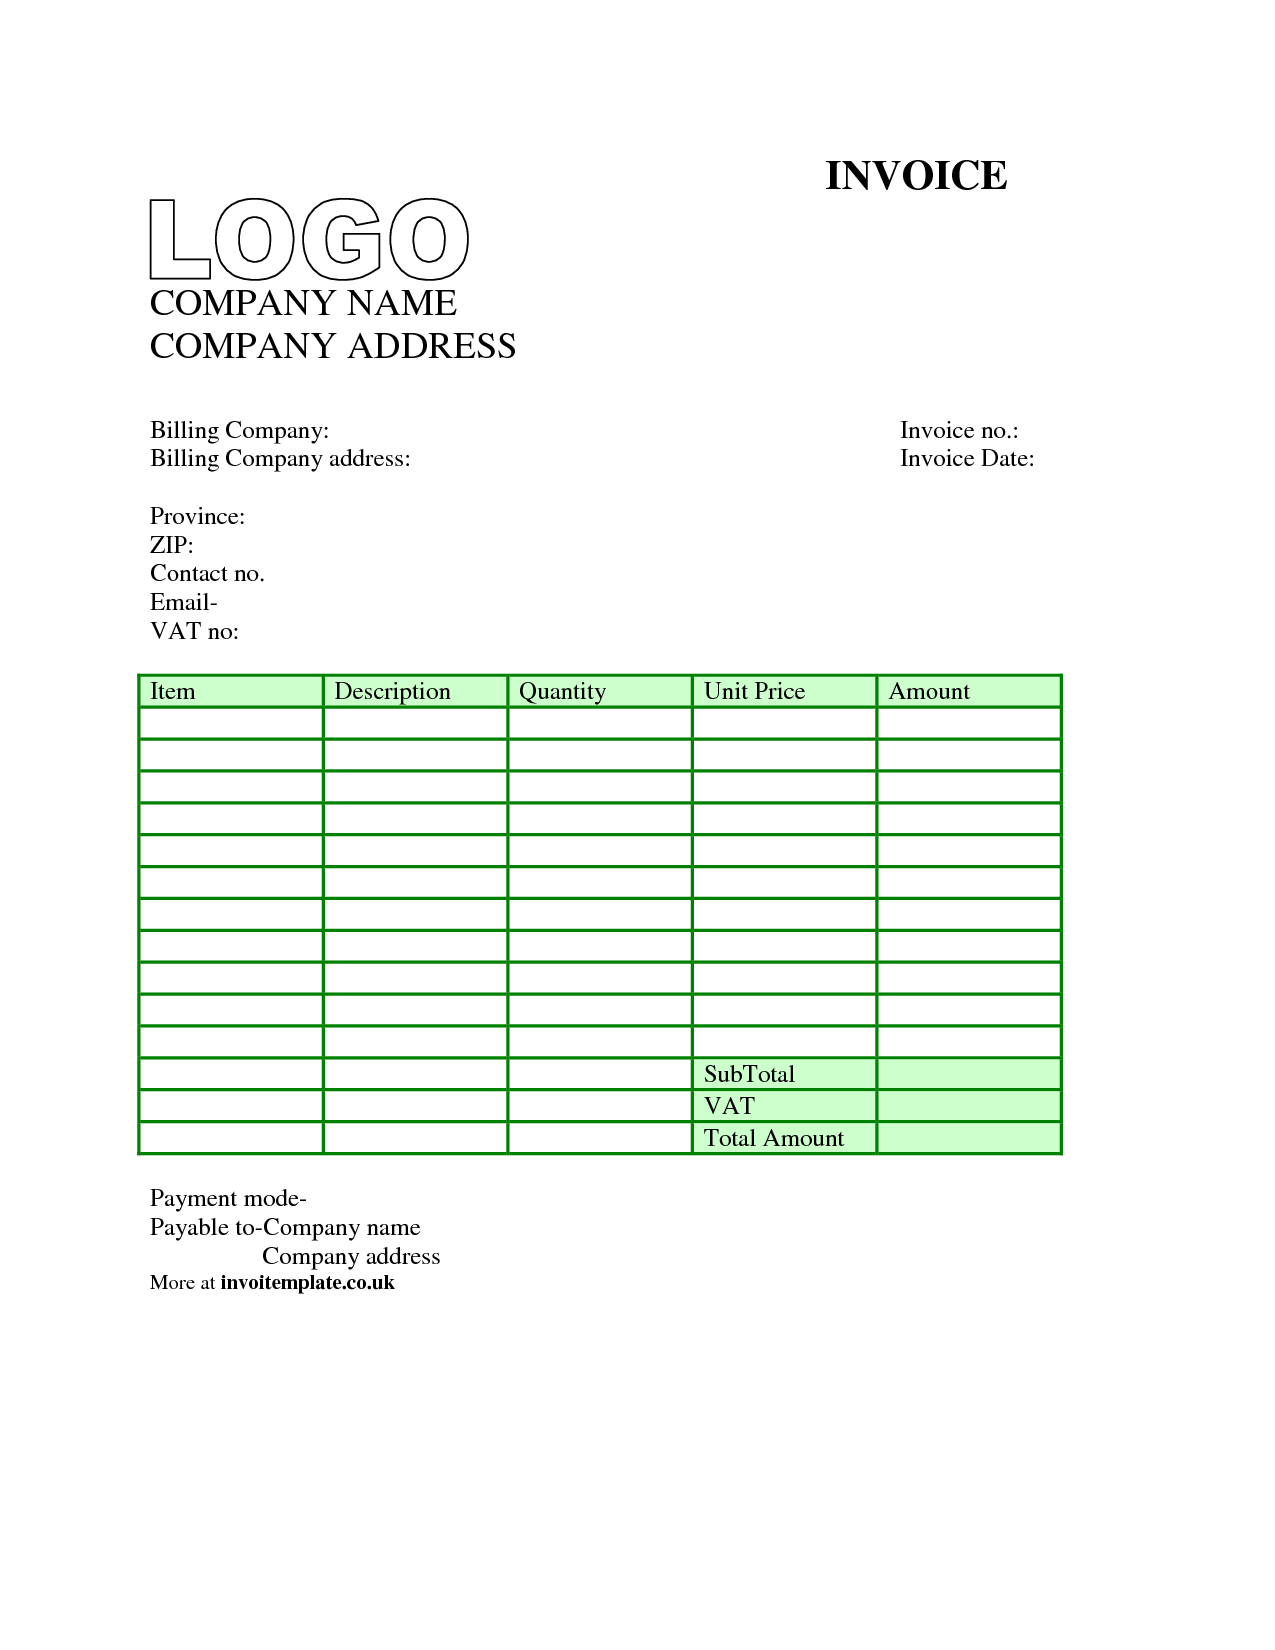 Italian Invoice Template Uk Self Employed Img For Standard / Hsbcu